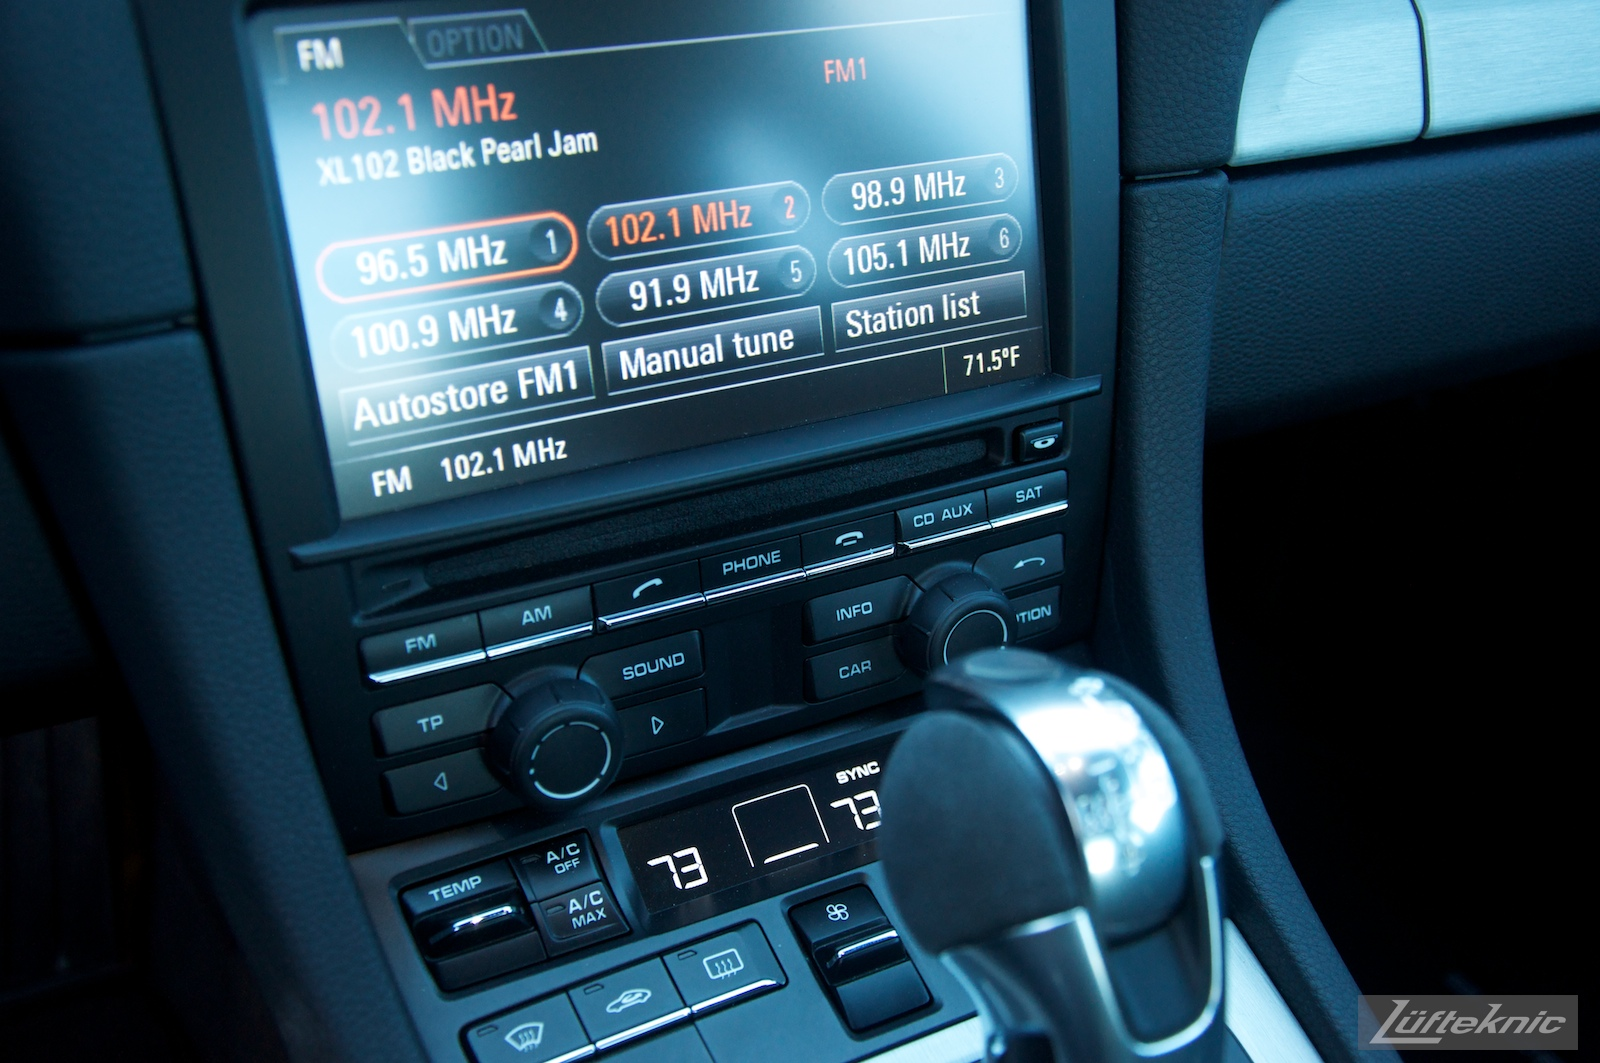 Lüfteknic Porsche 991 GT3 radio and display